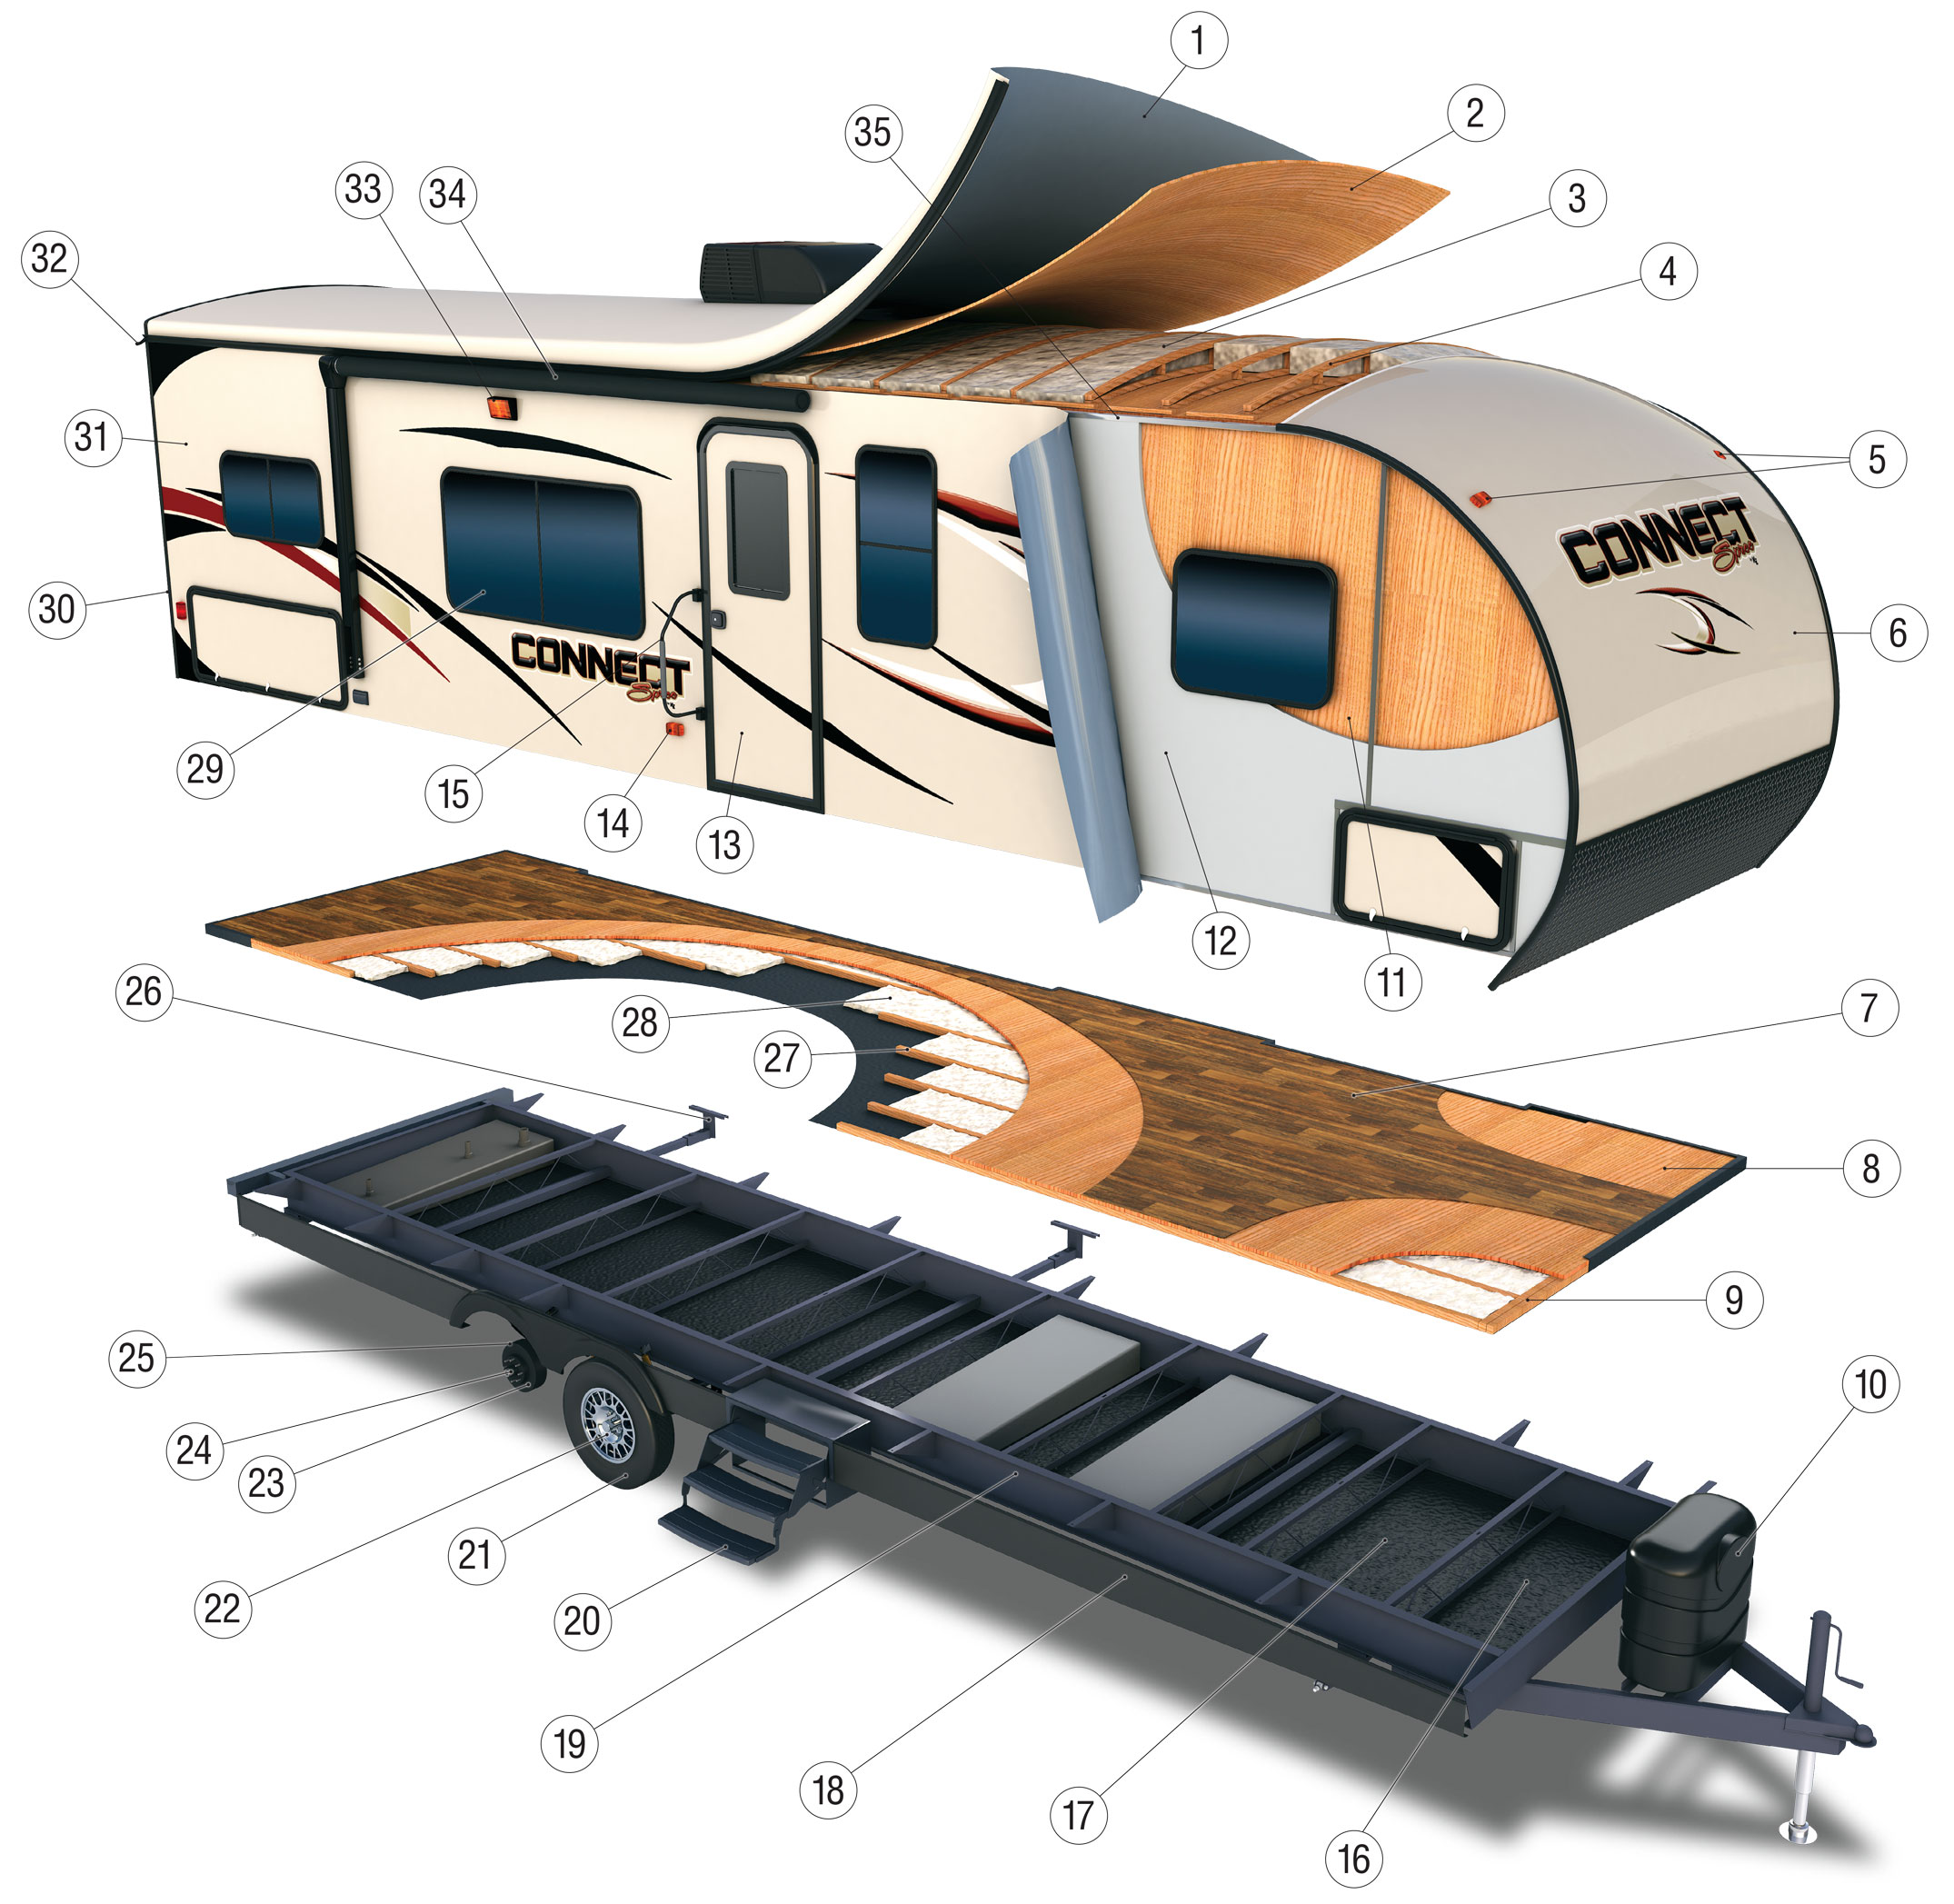 2017 KZ RV Connect Travel Trailer Cutaway